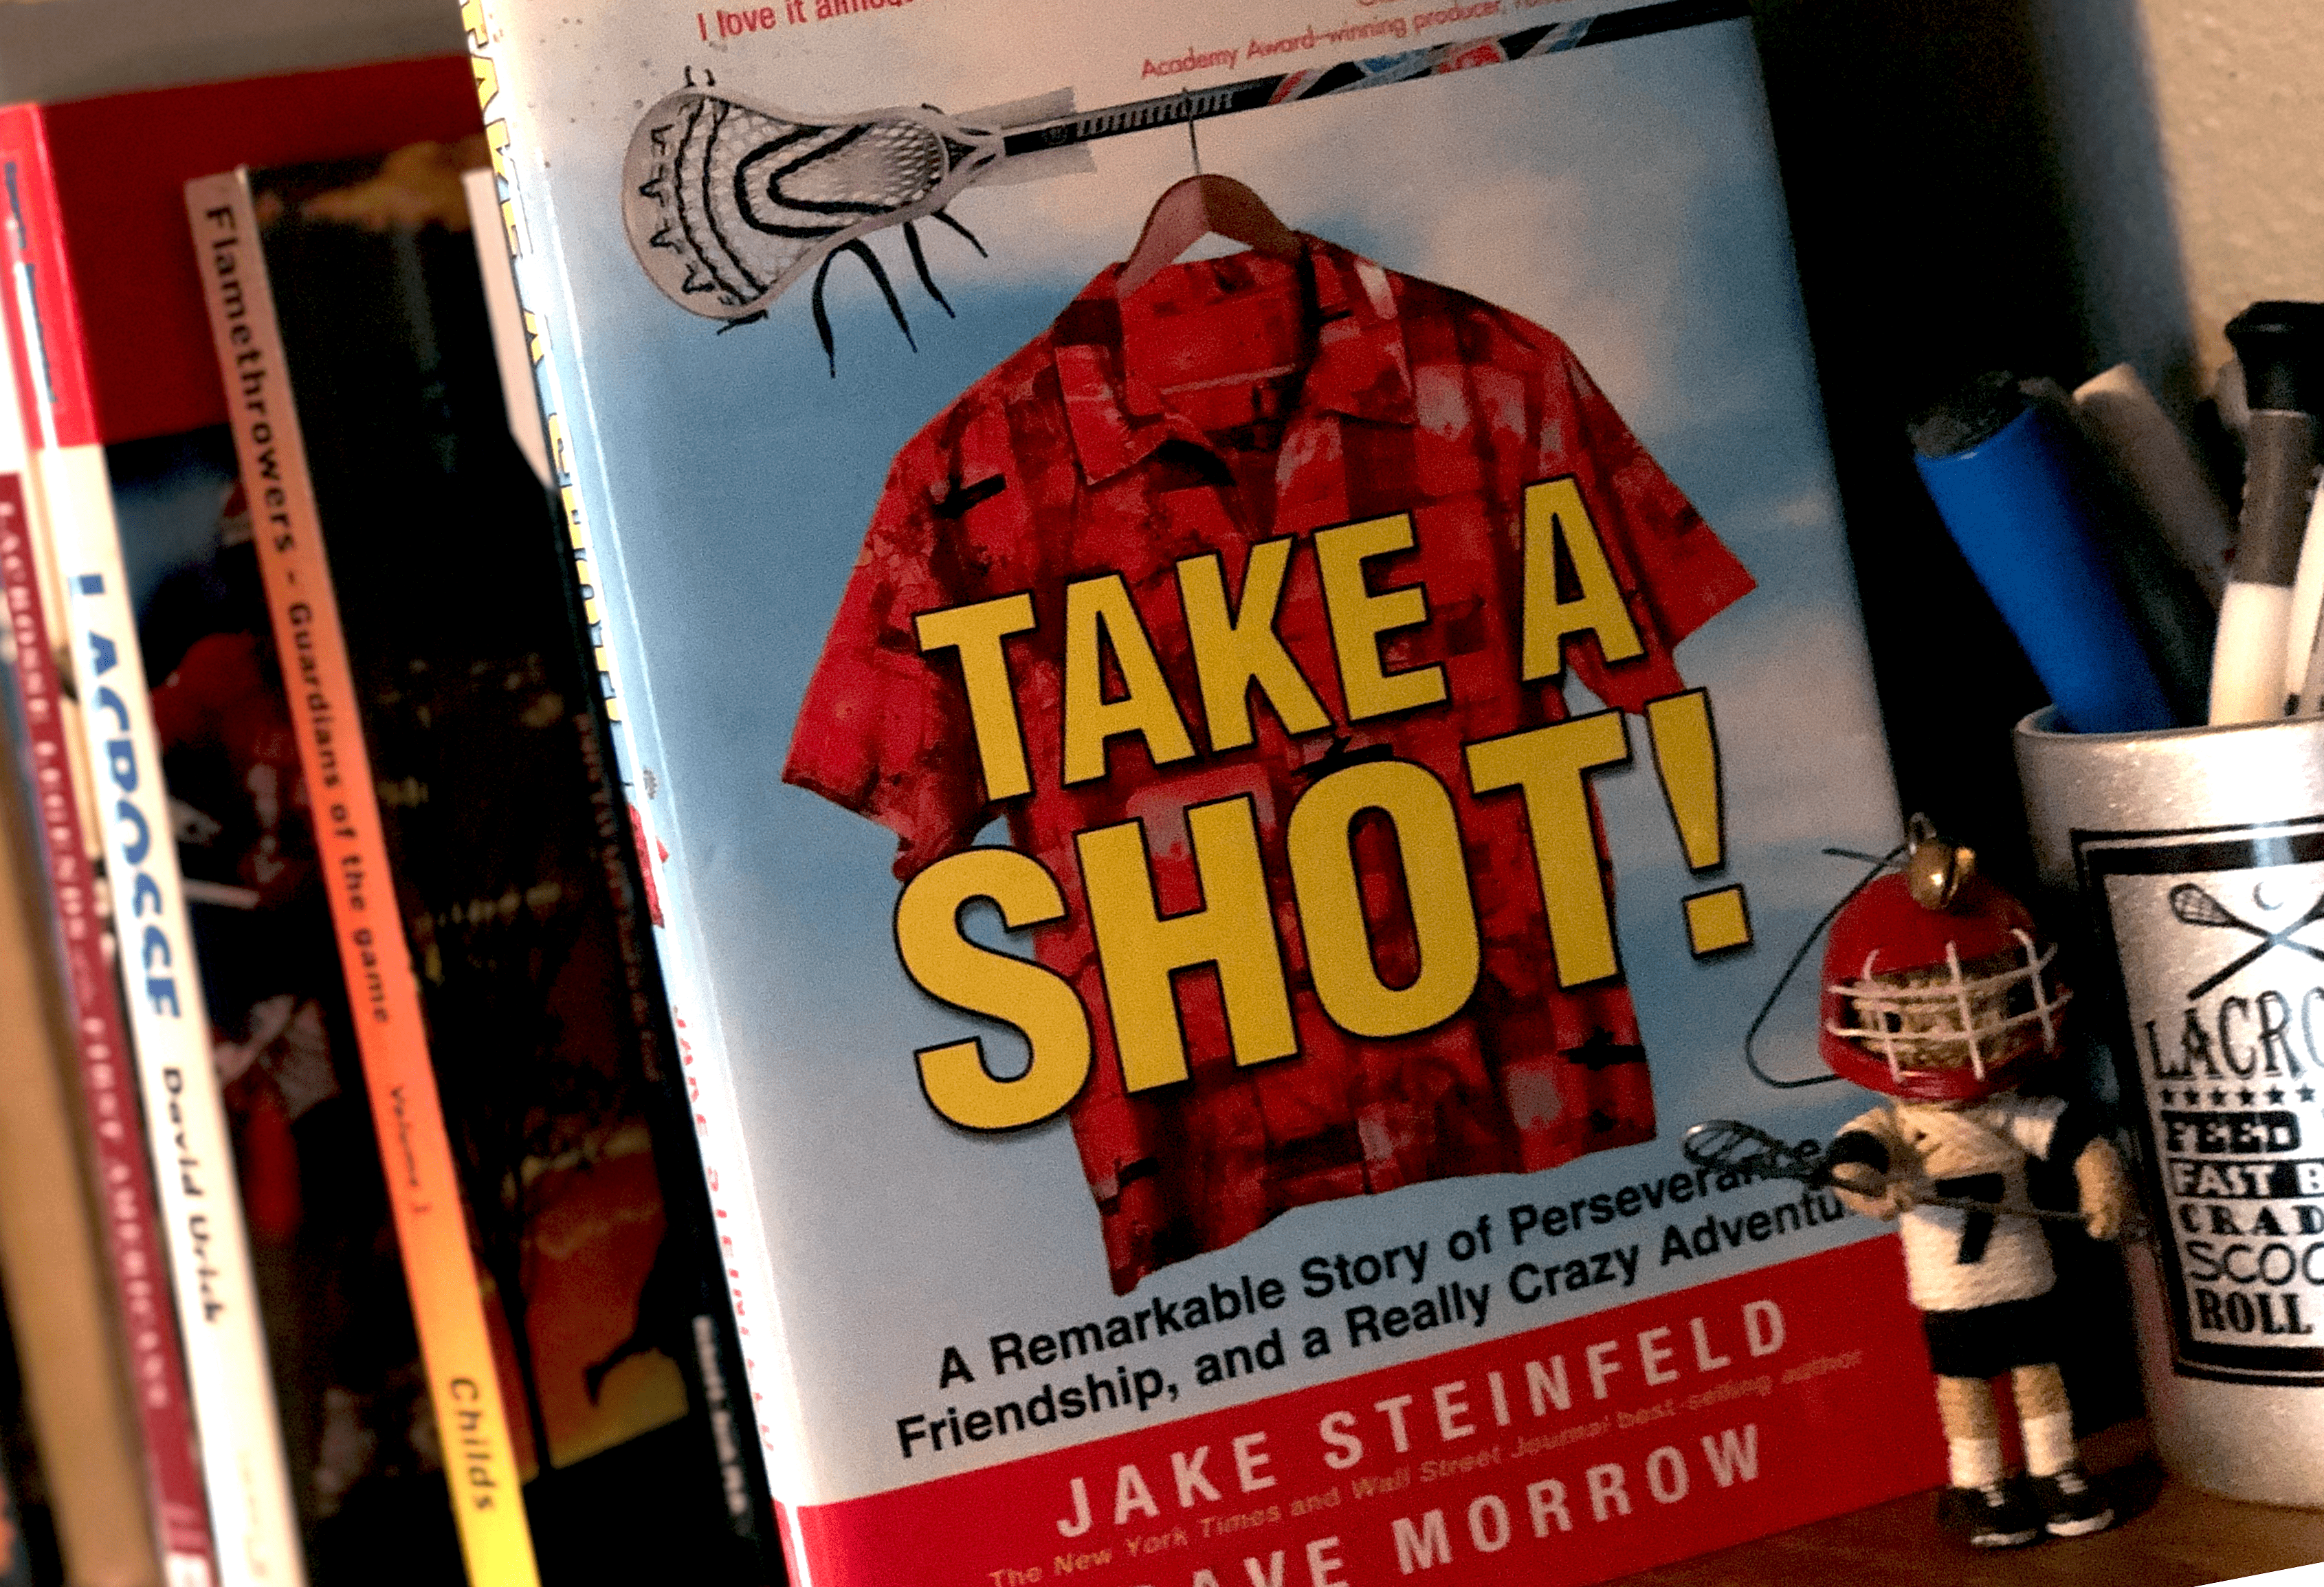 Take a Shot! by Jake Steinfeld, Dave Morrow - Lacrosse Book Reports